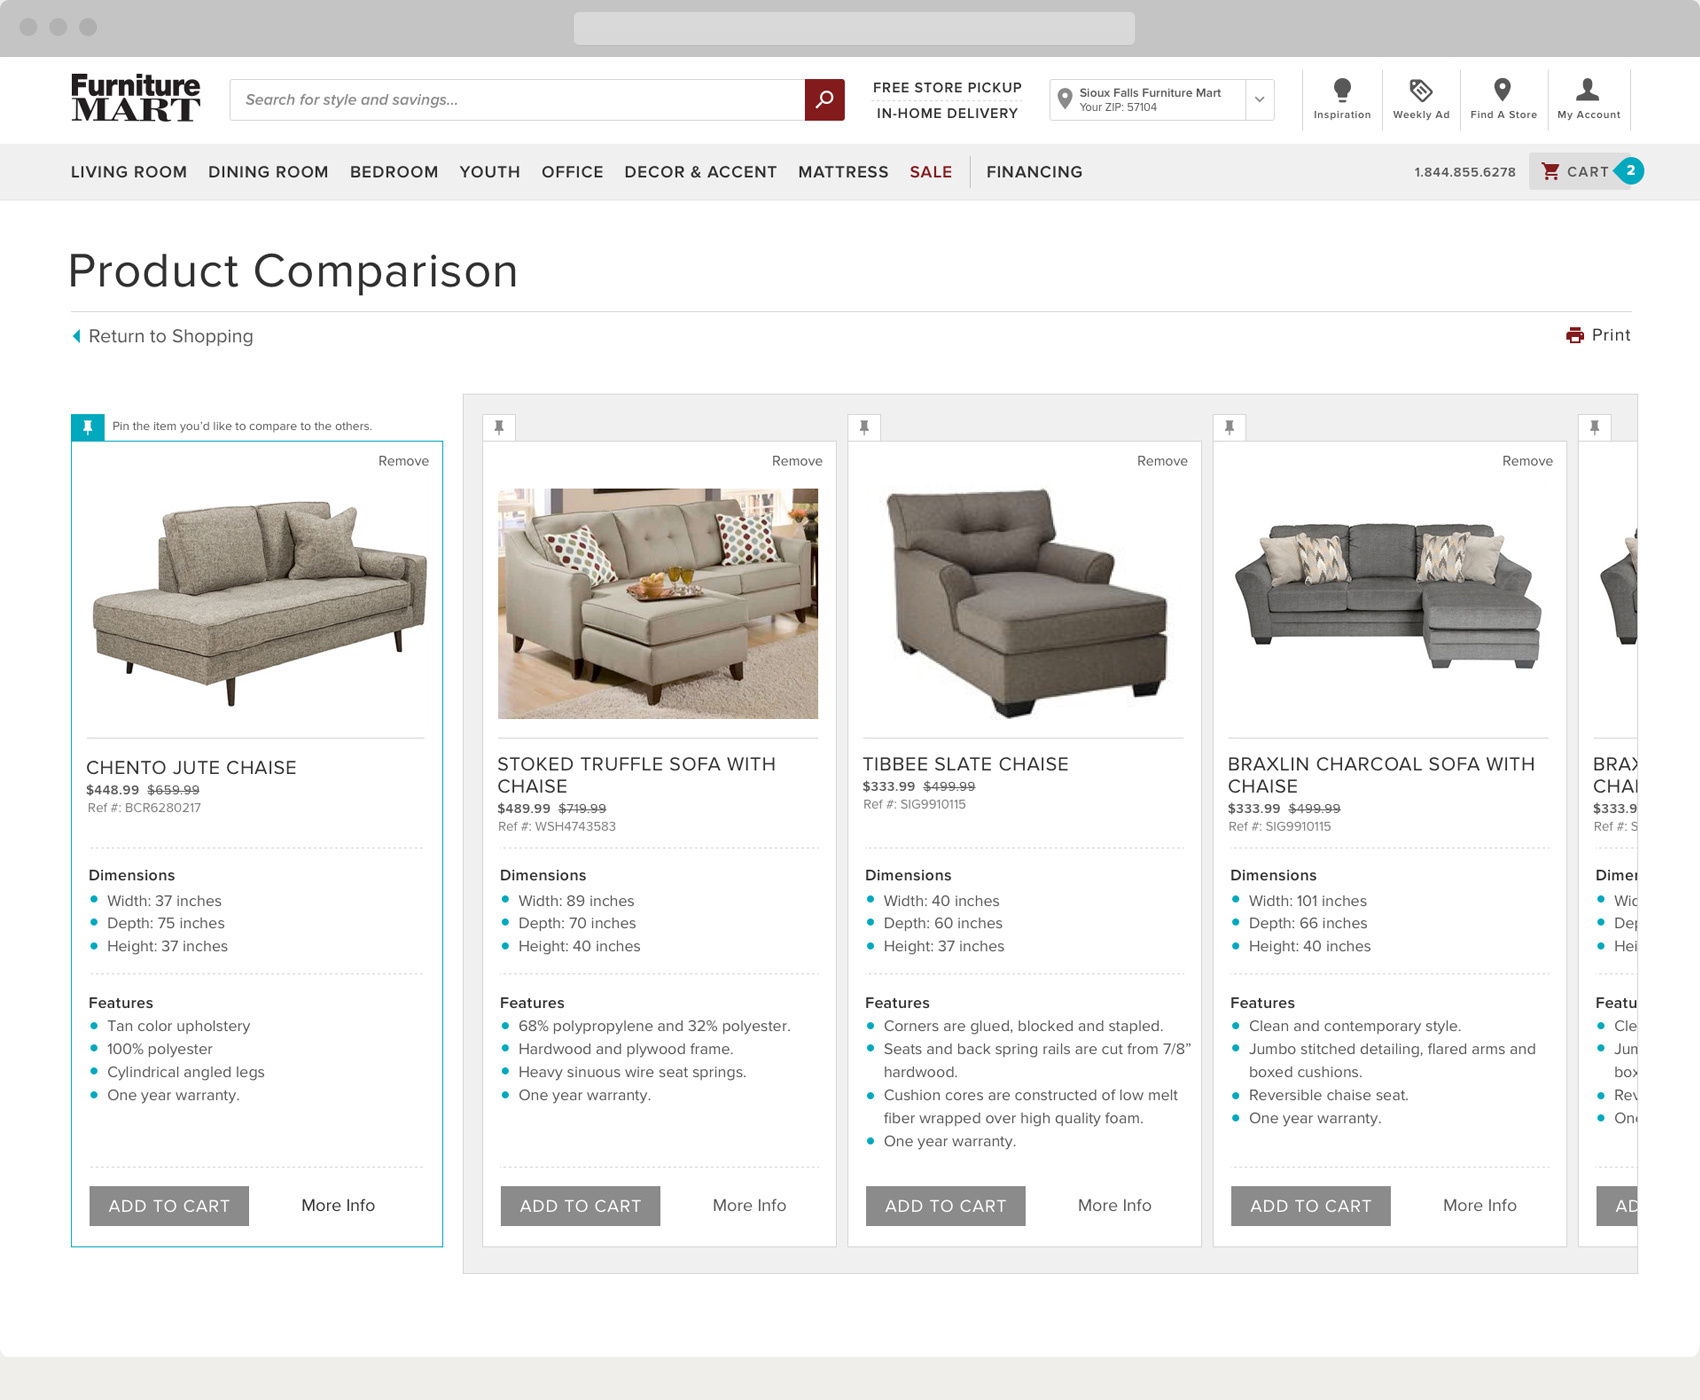 Furniture Mart Compare Products Page